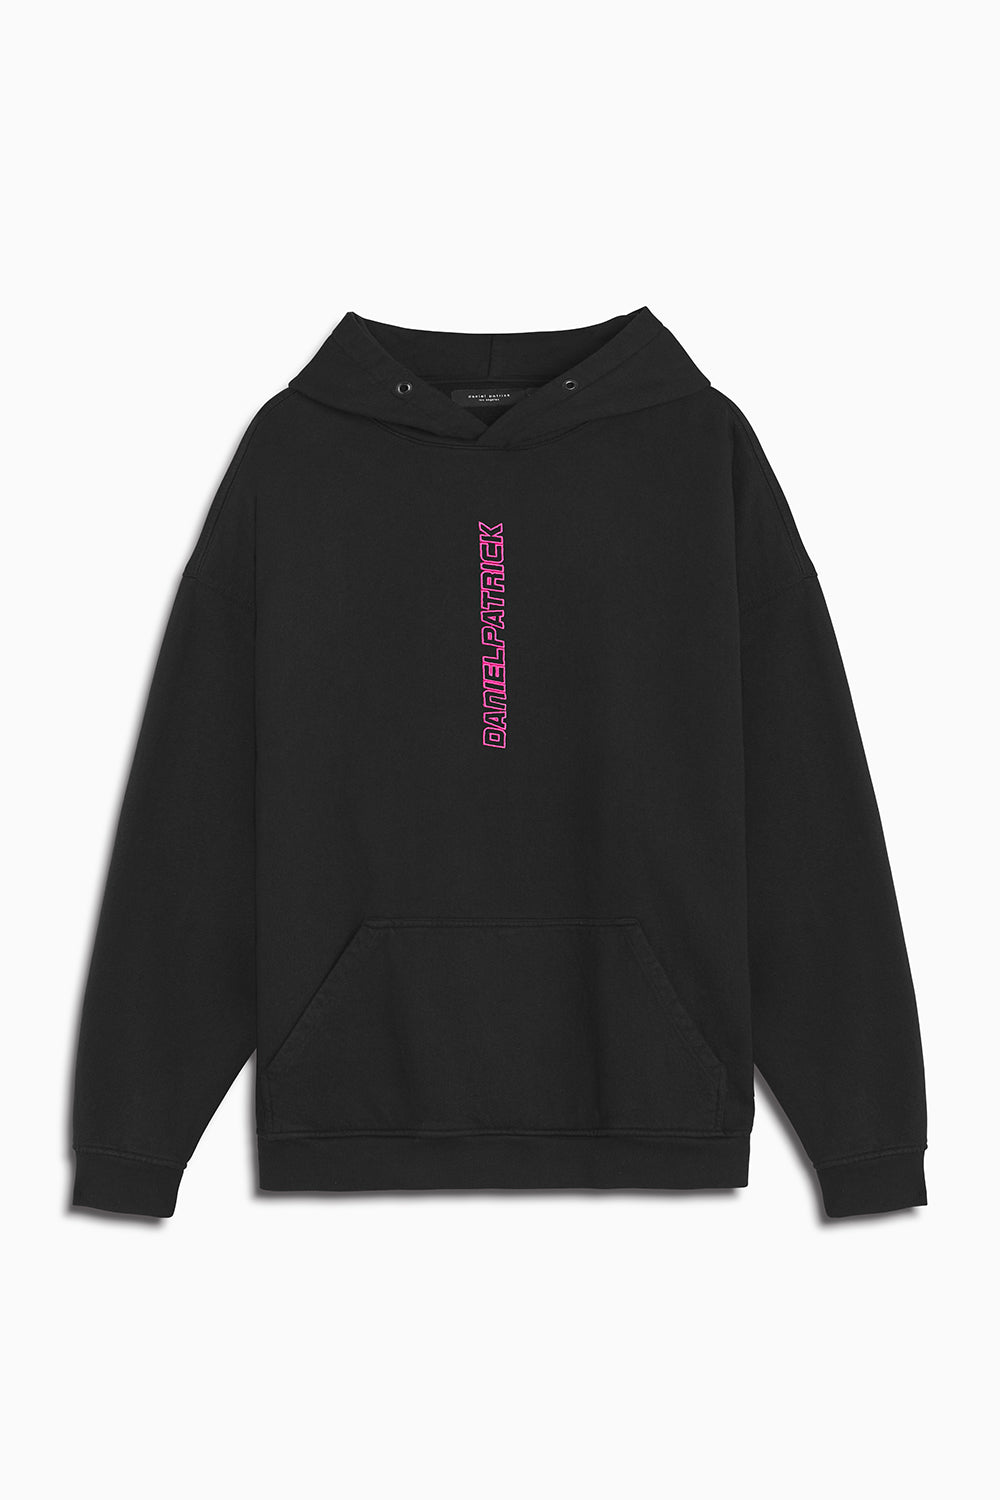 vertical logo hoodie in black/pink by daniel patrick